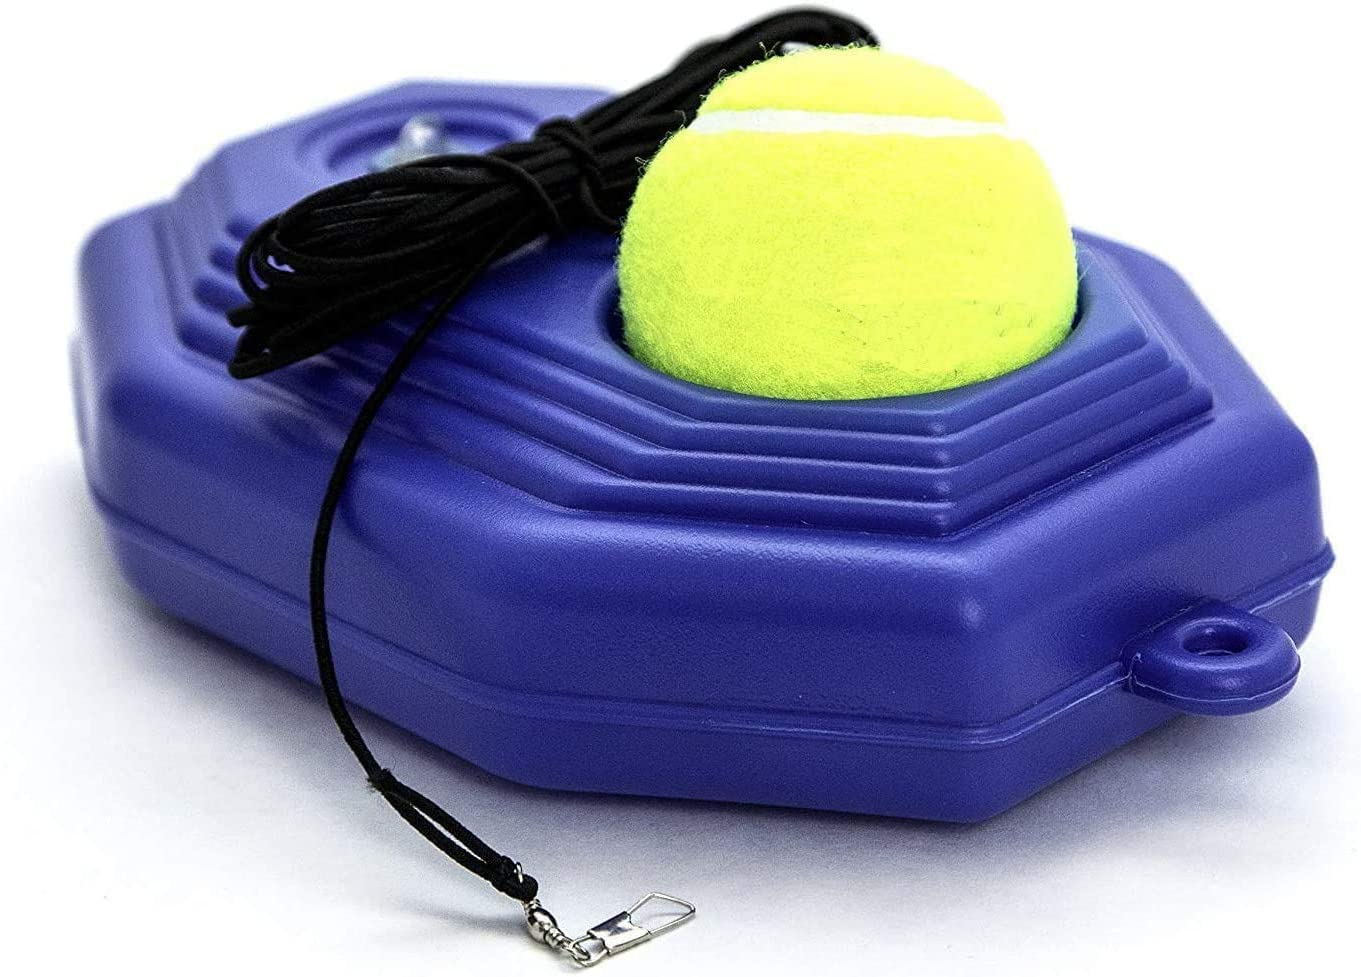 Autrix Tennis Trainer Tennis Ball Trainer Tennis Equipment Sport Exercise Tennis Base with A Rope Self-Study Tennis Rebound Player with Trainer Baseboard Training Ball (Blue) : Sports & Outdoors